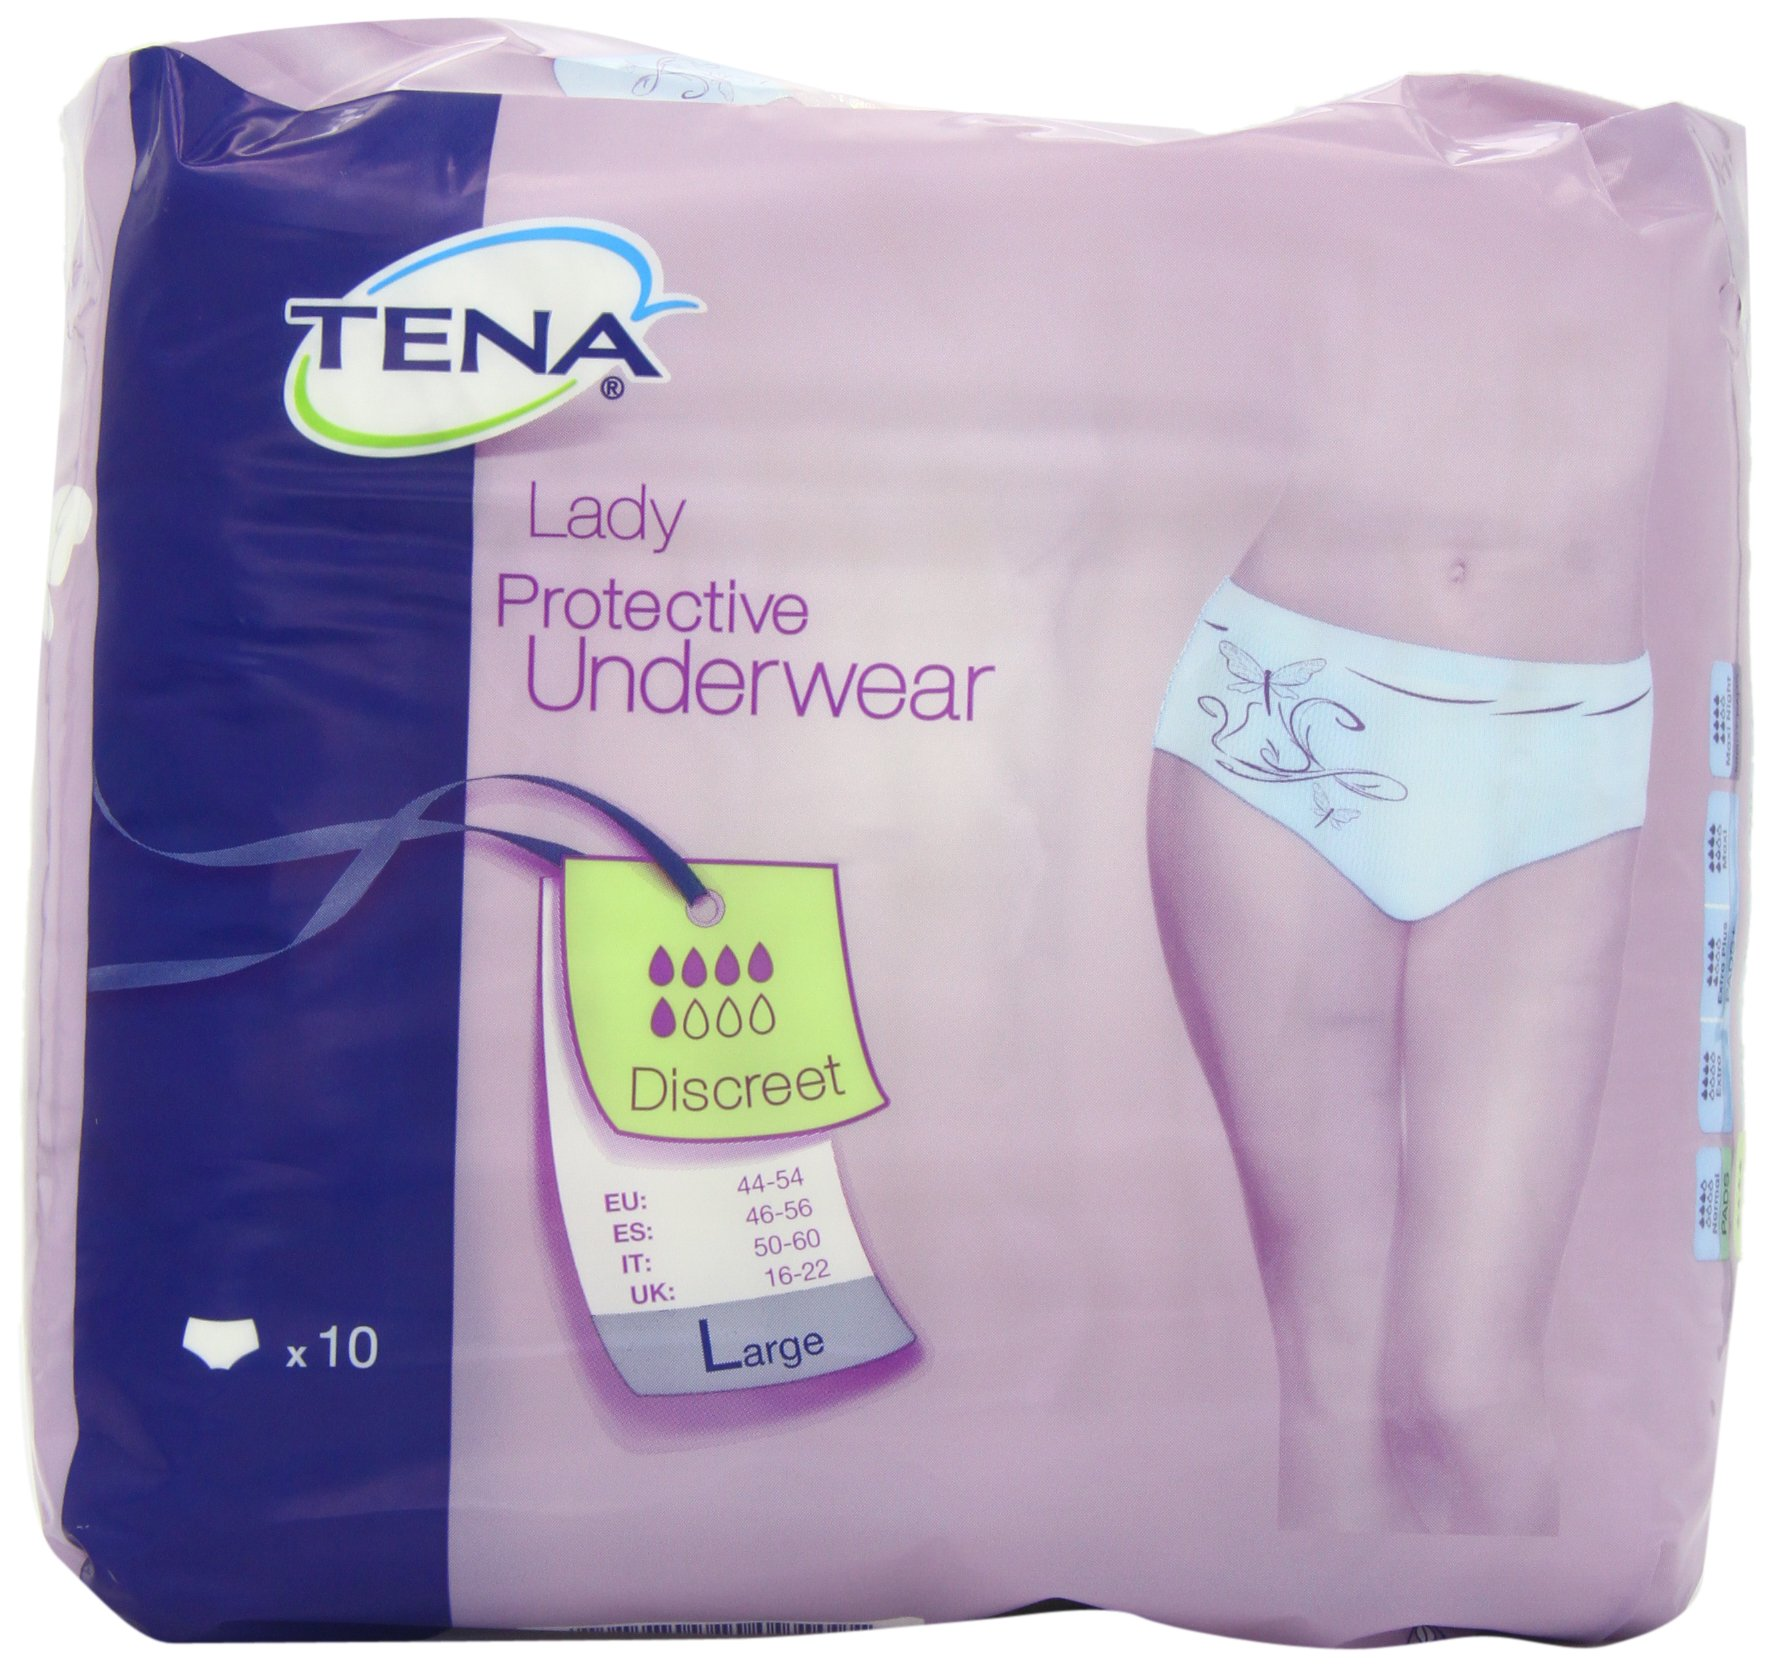 TENA Protective Underwear Discreet Large - 3 x Packs of 10 (30 Protective)